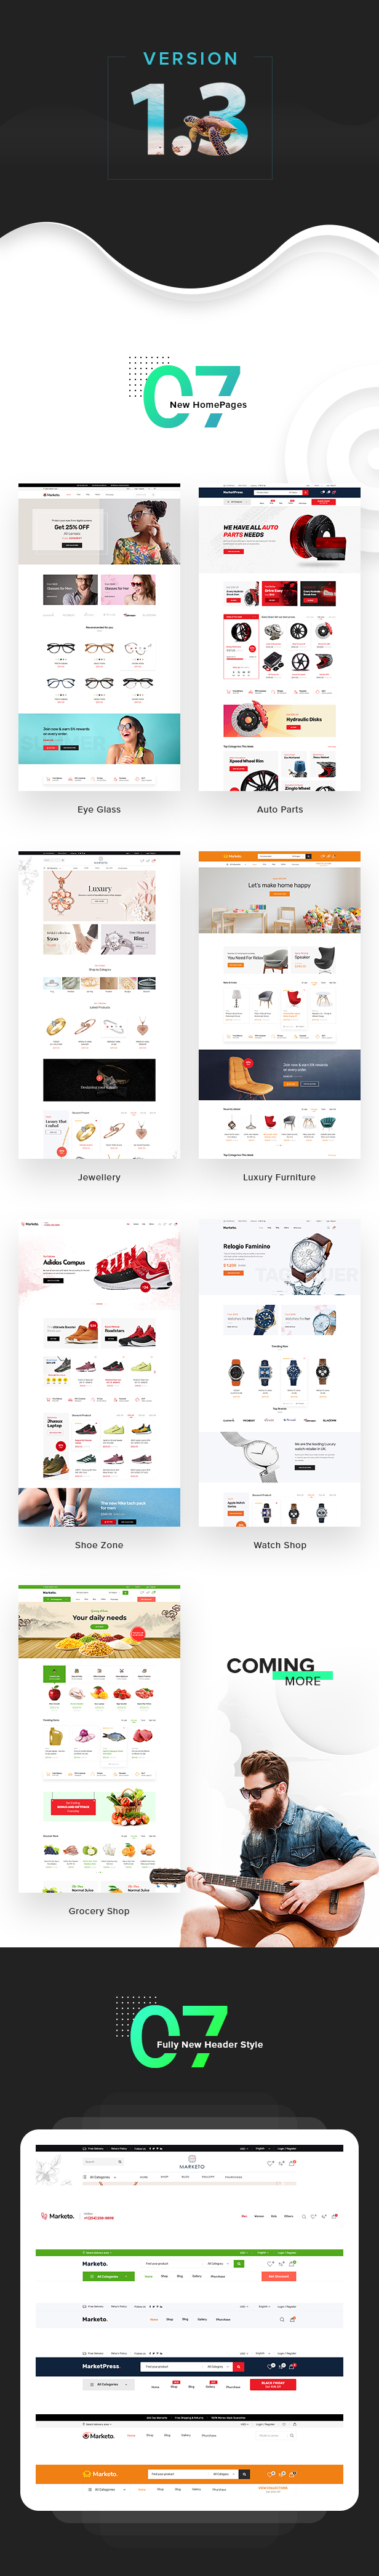 New homepage - Marketo - eCommerce & Multivendor Marketplace Woocommerce WordPress Theme